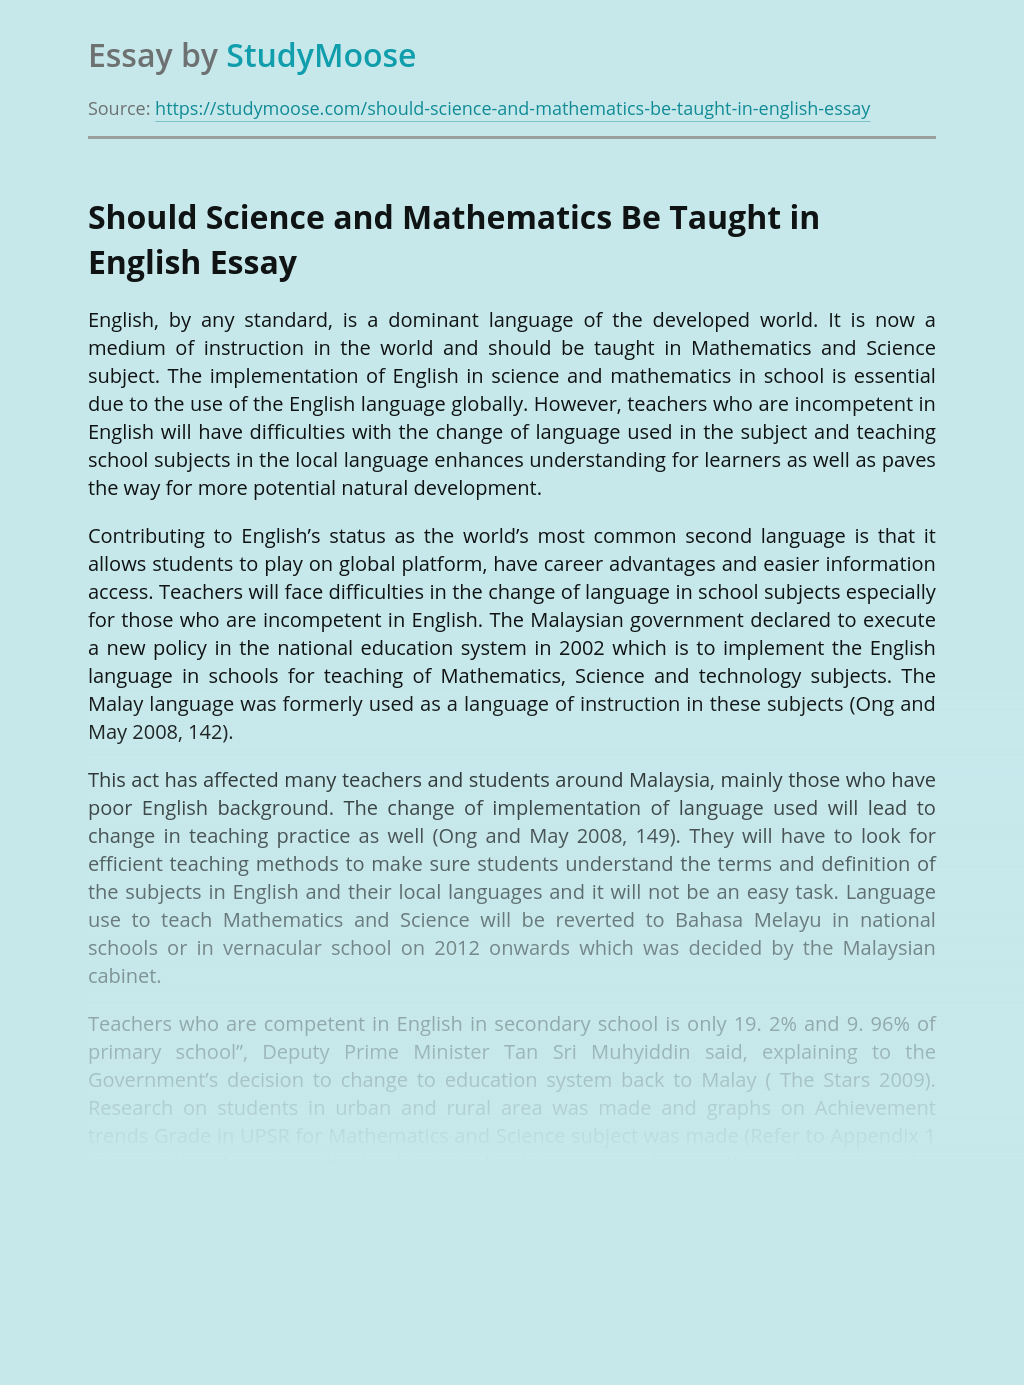 Should Science and Mathematics Be Taught in English